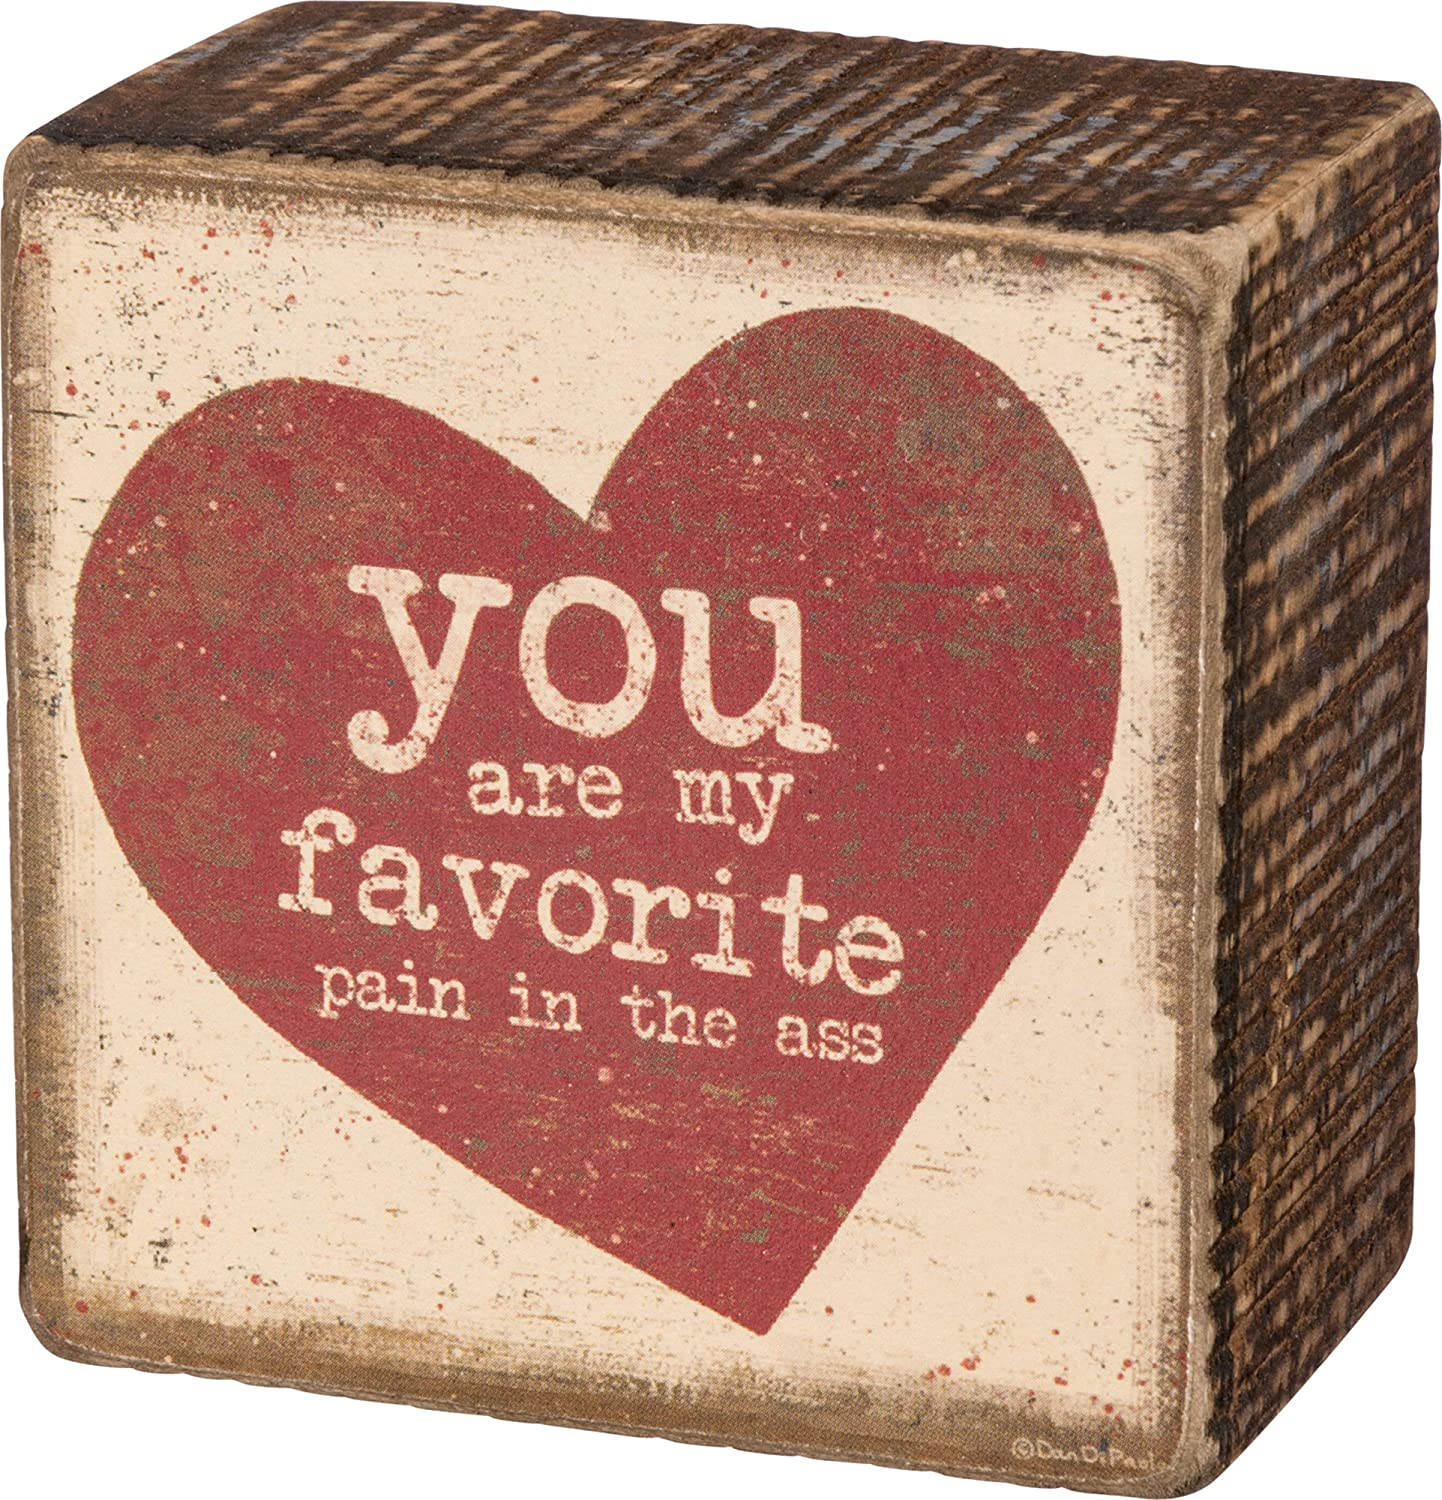 "Primitives by Kathy 3"" x 3"" MINI Decorative Box Sign - You Are My Favorite Pain,Brown, Red, Cream, Vintage"